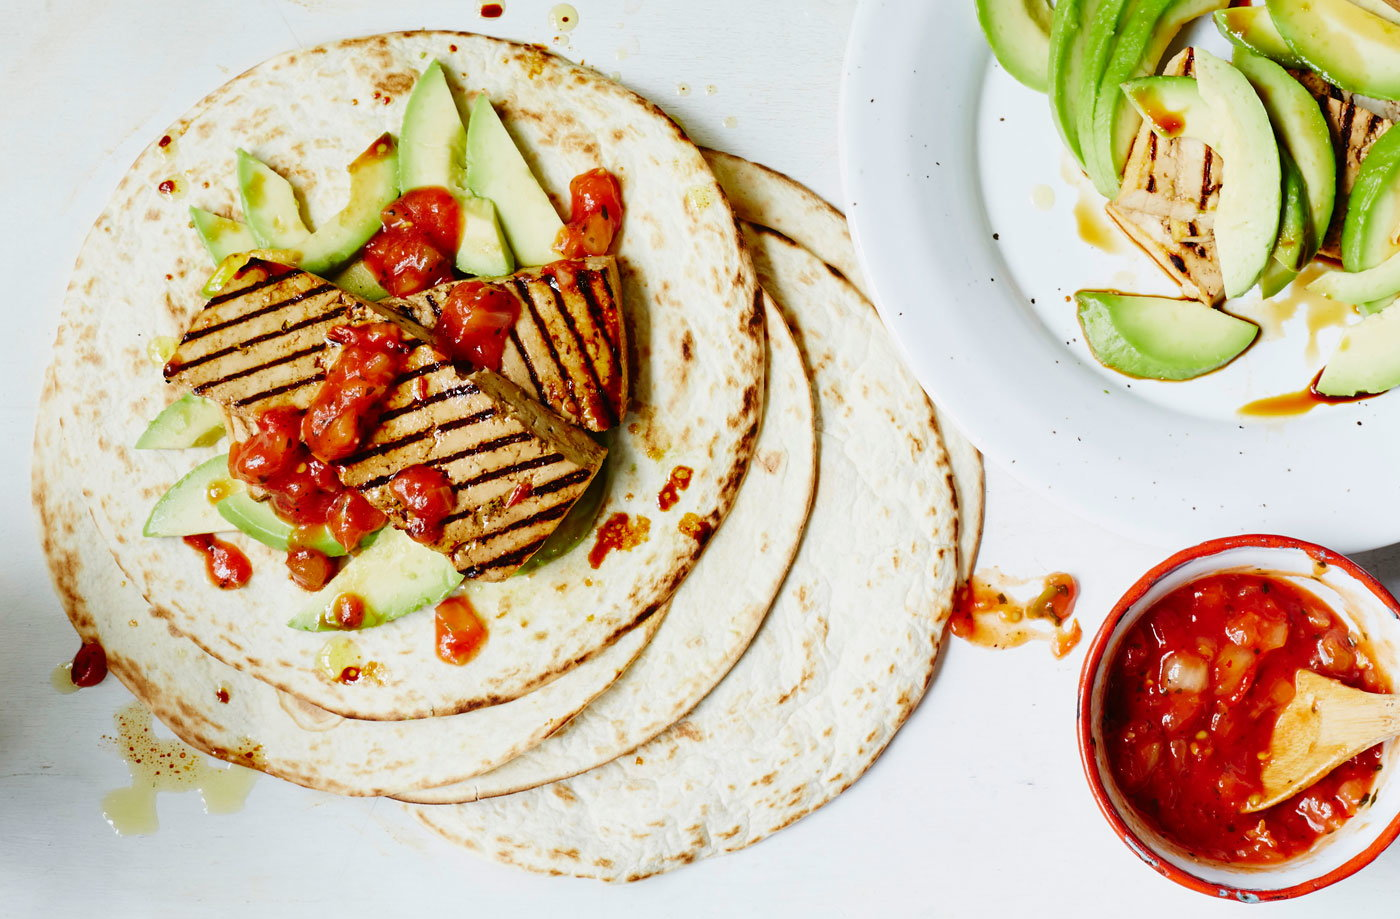 Grilled tofu wraps with salsa and avocado recipe